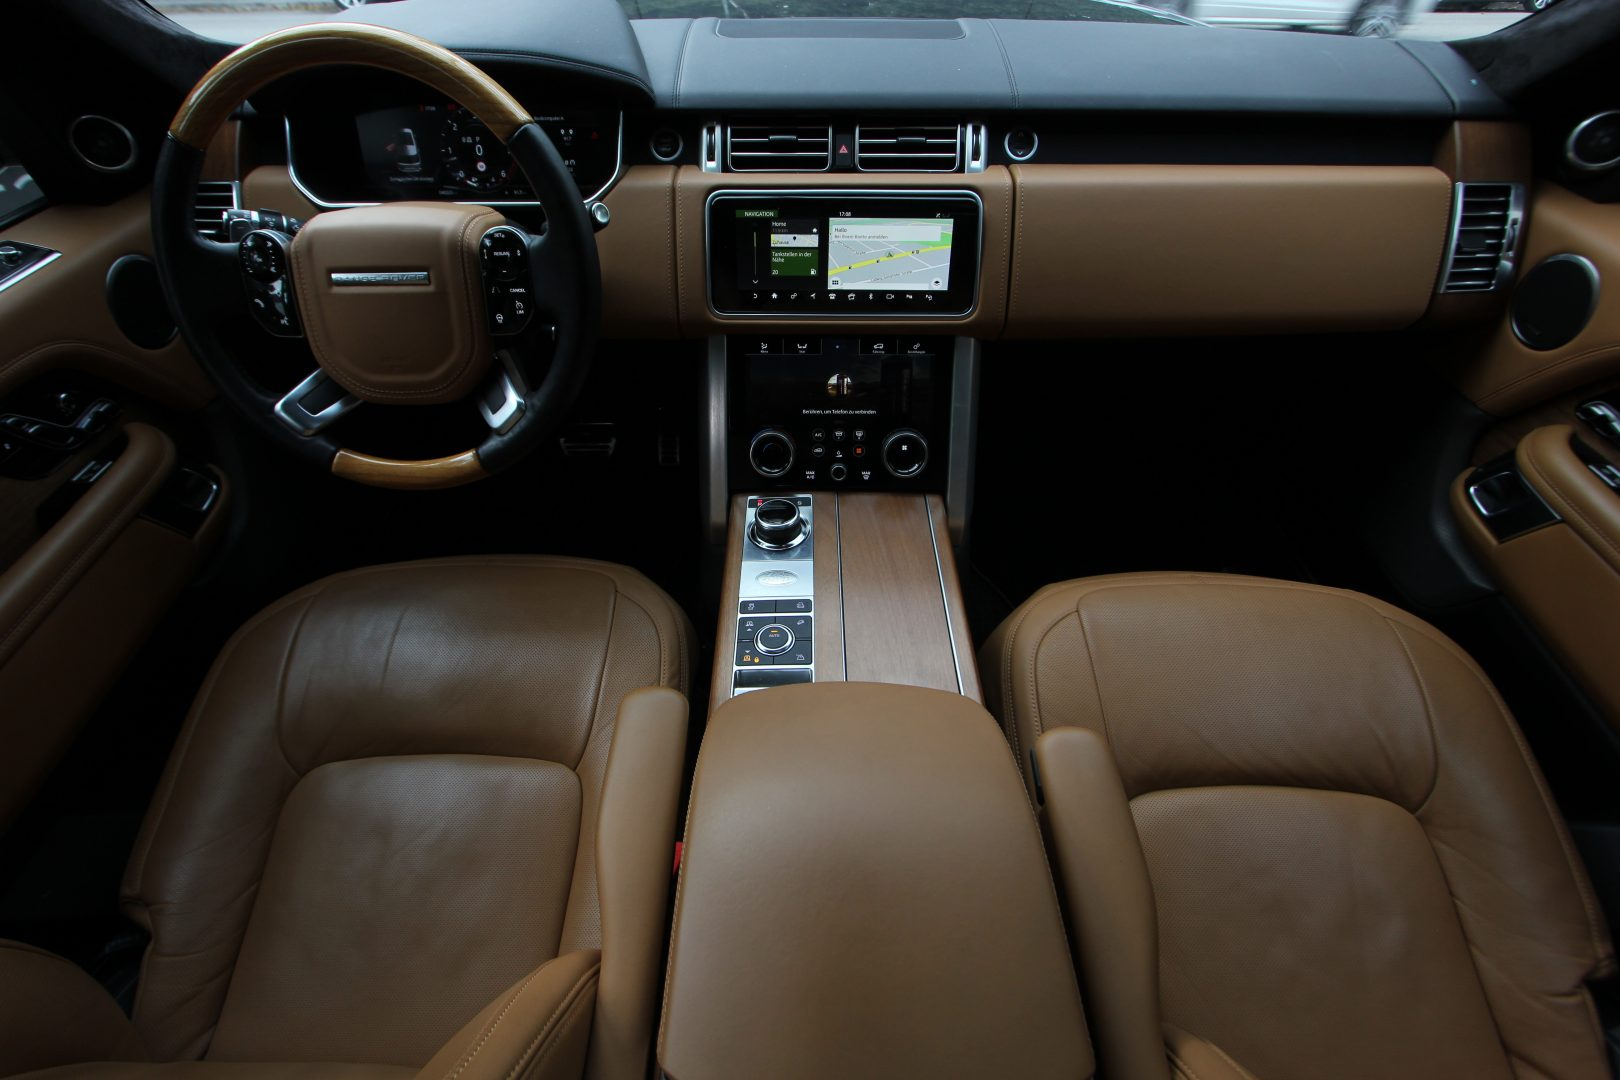 AIL Land Rover Range Rover SDV8 Autobiography 12